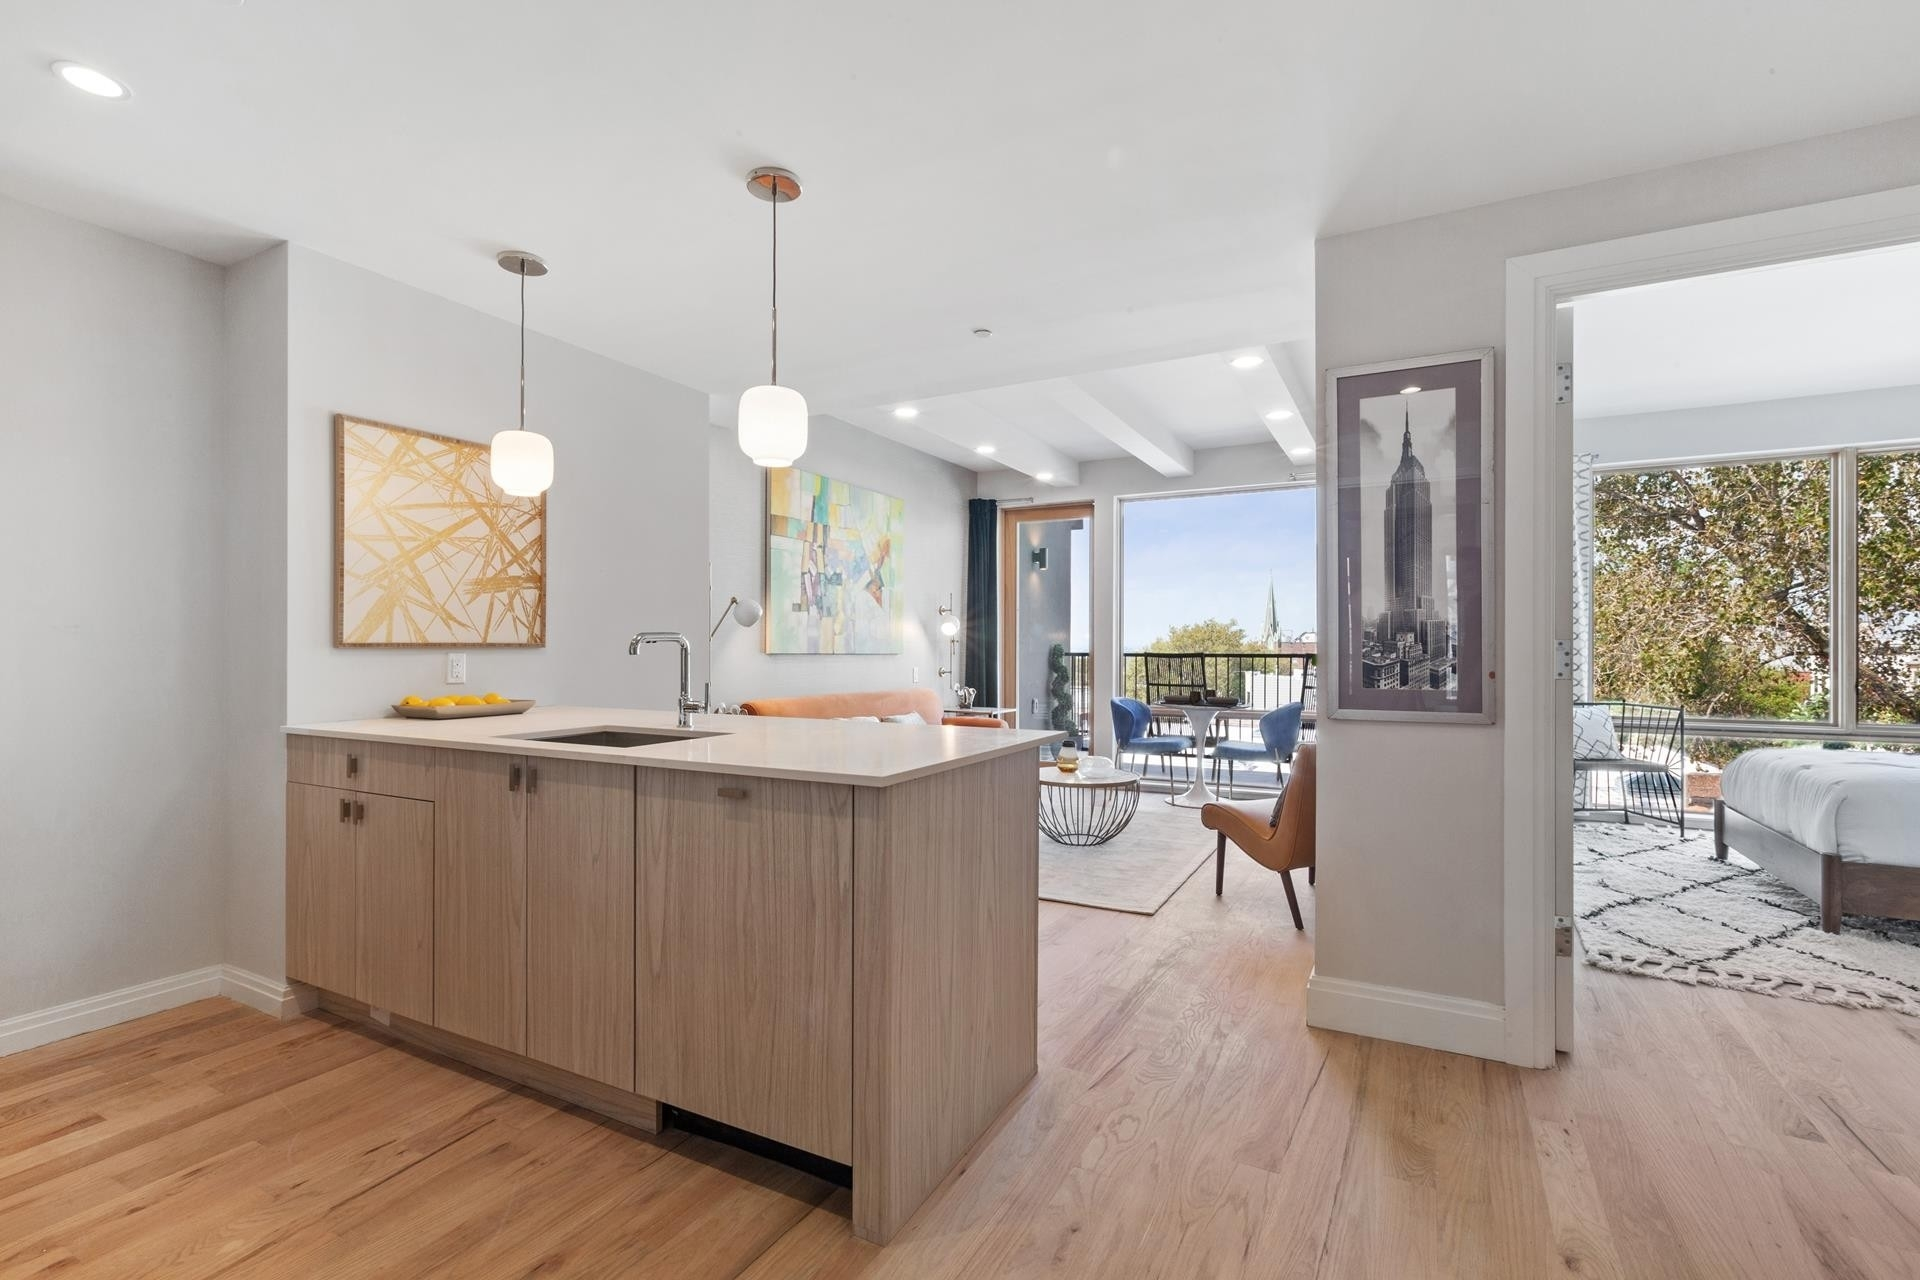 2. Condominiums for Sale at 734 Fifth Avenue, 6B Greenwood, Brooklyn, NY 11232